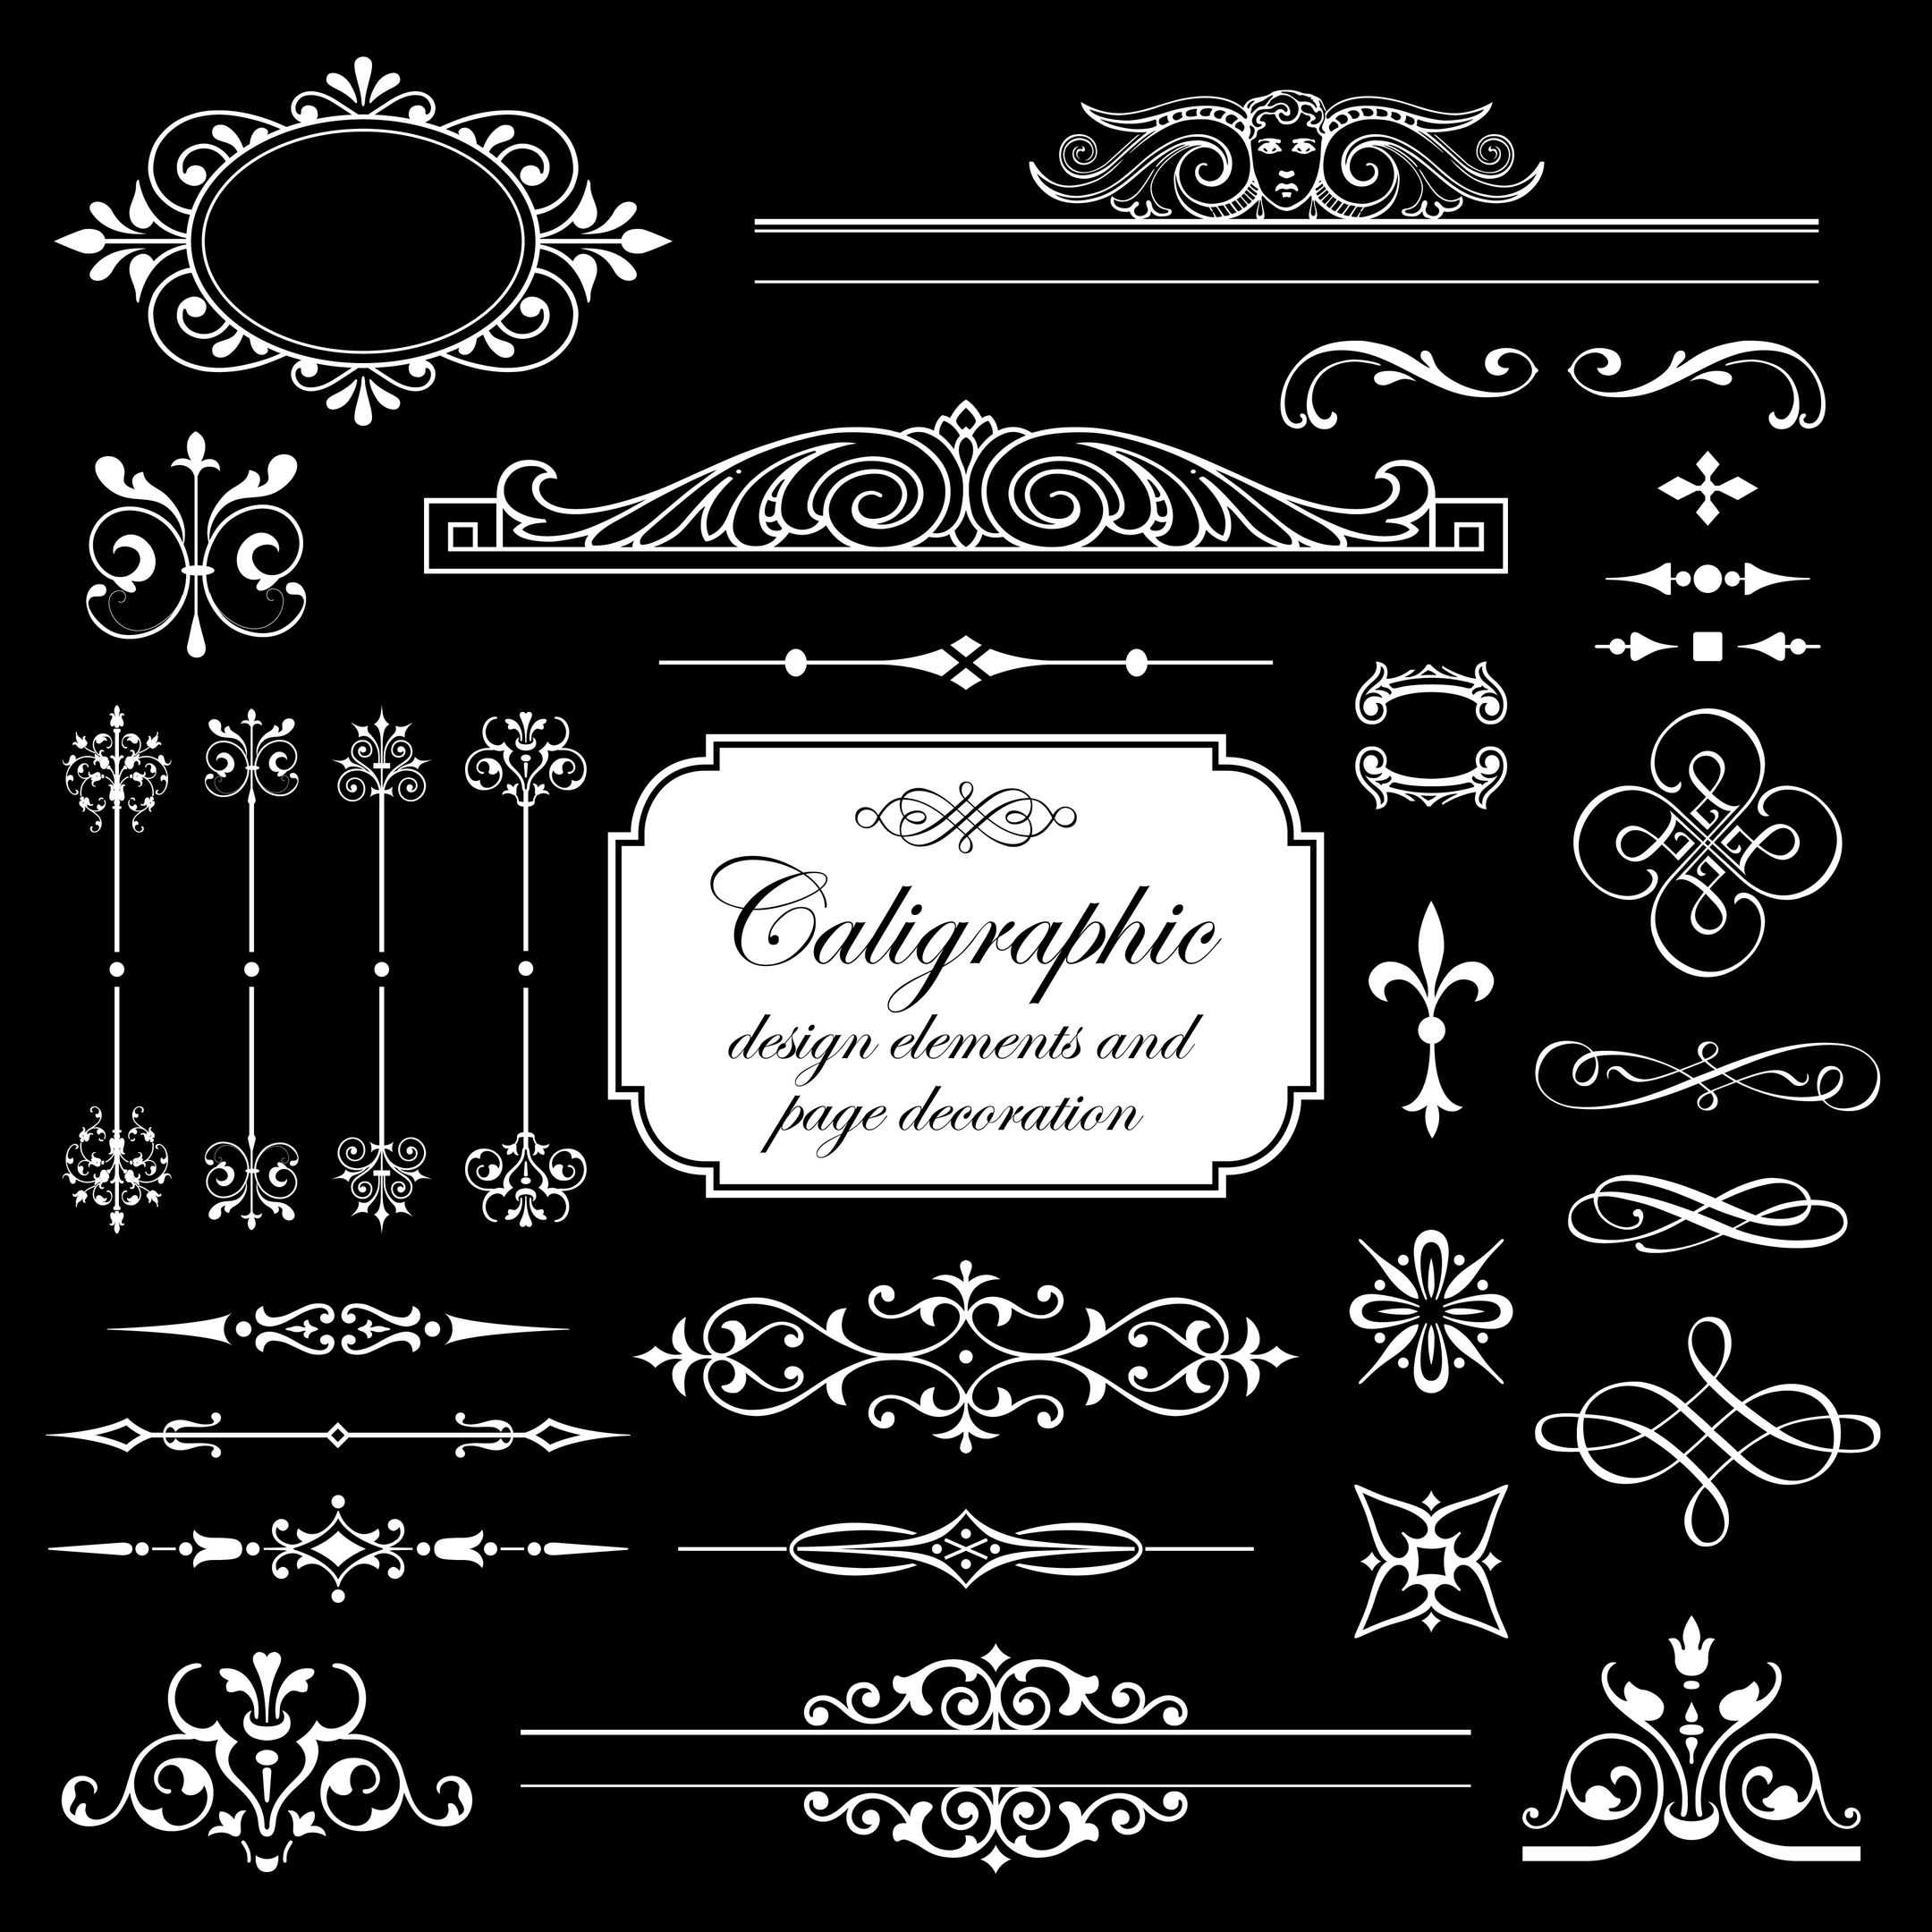 Calligraphic Elements And Page Decoration Isolated On Black Background Vector Set For Design Free Vector